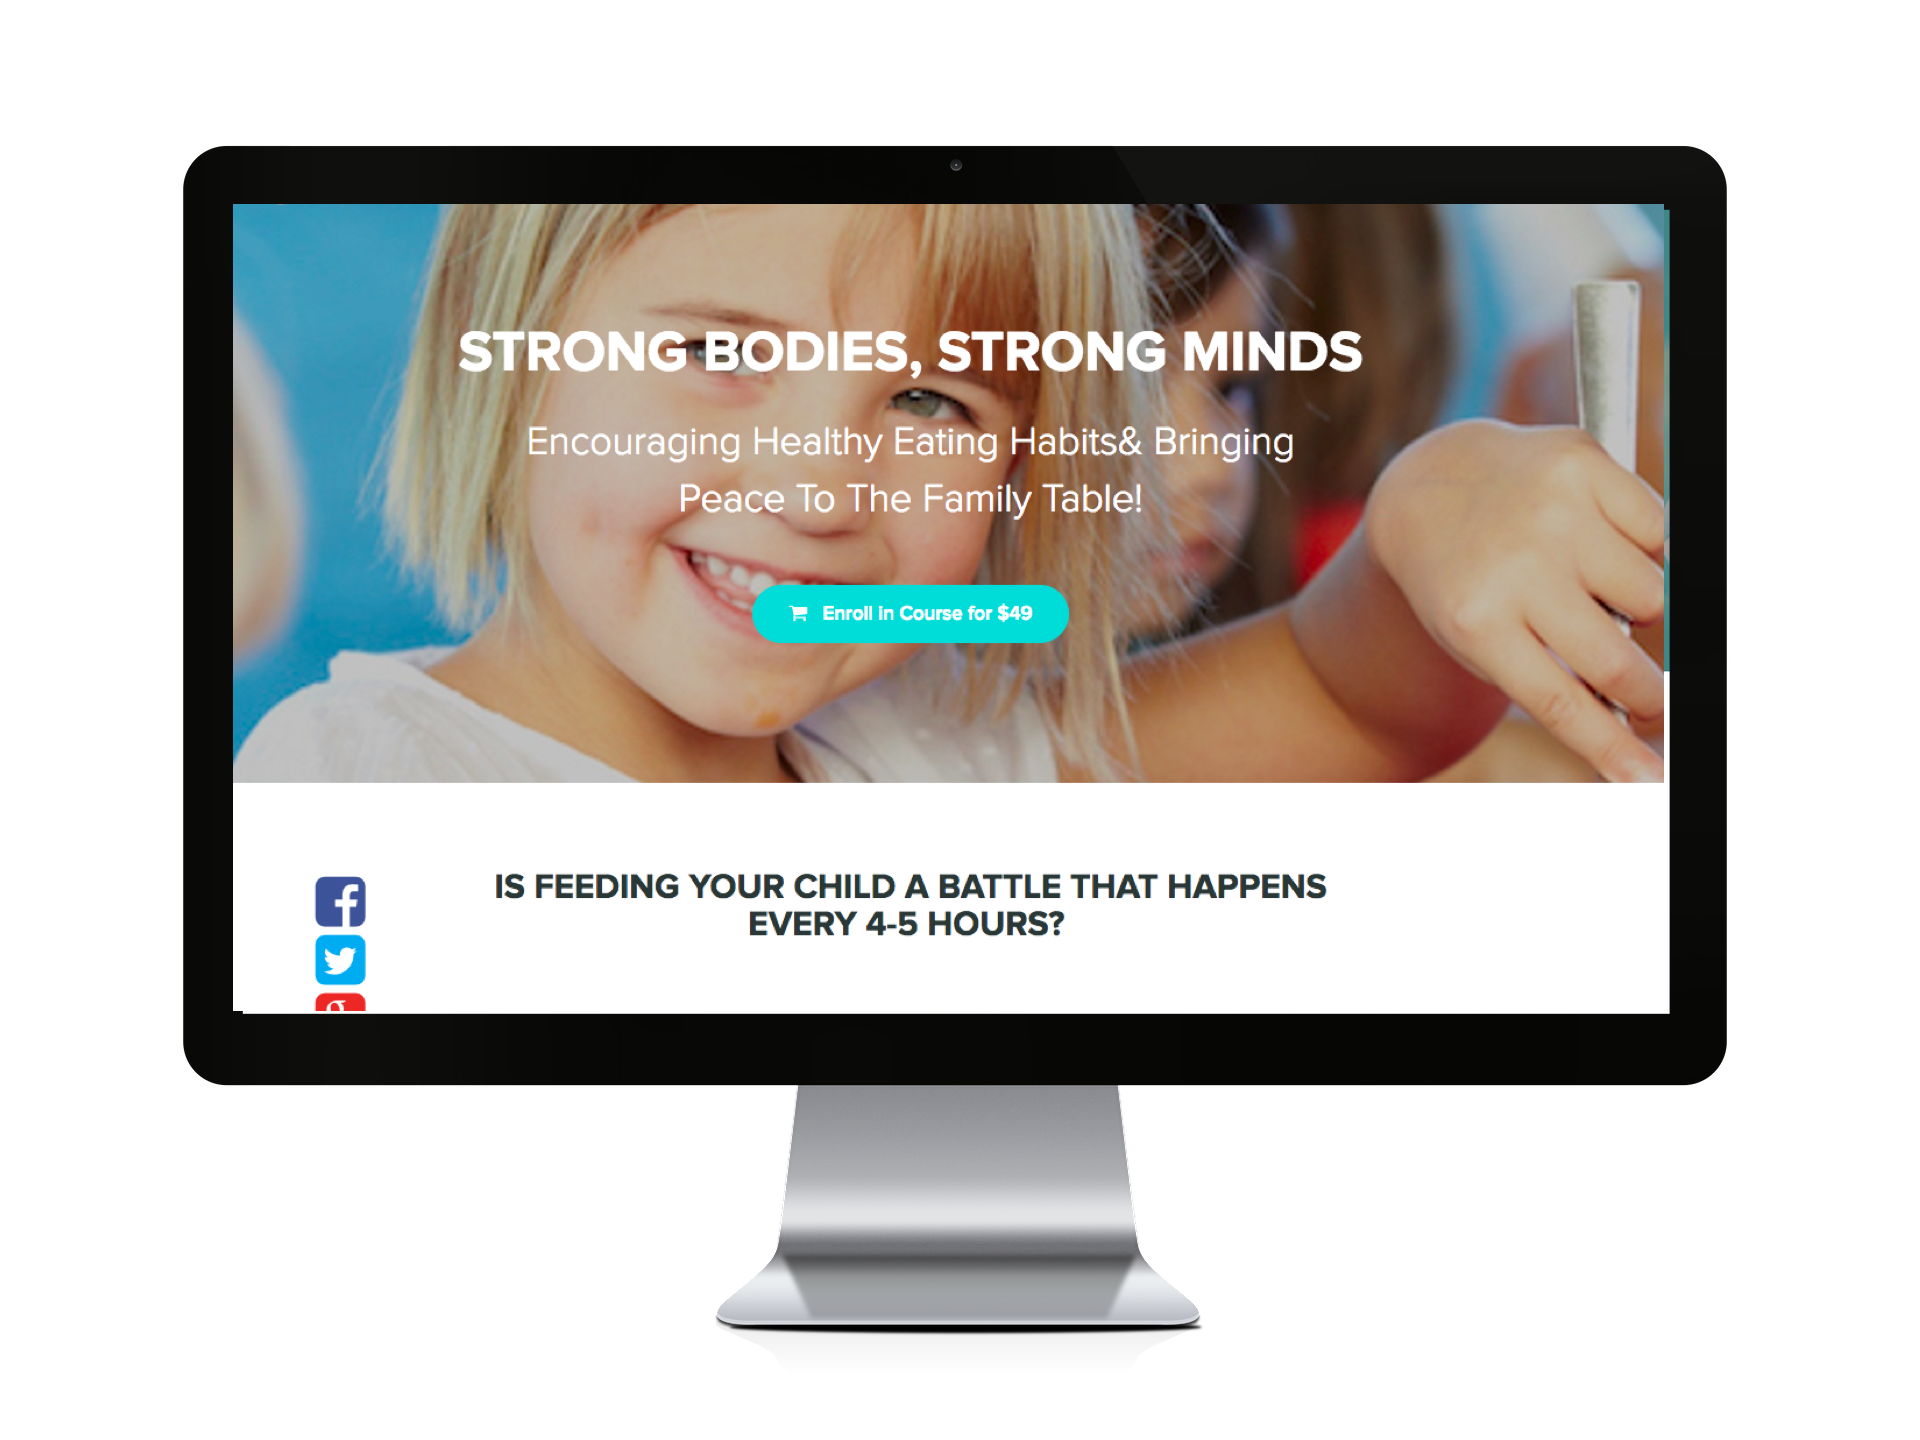 Strong Bodies Strong Minds Course - Eating and Feeding